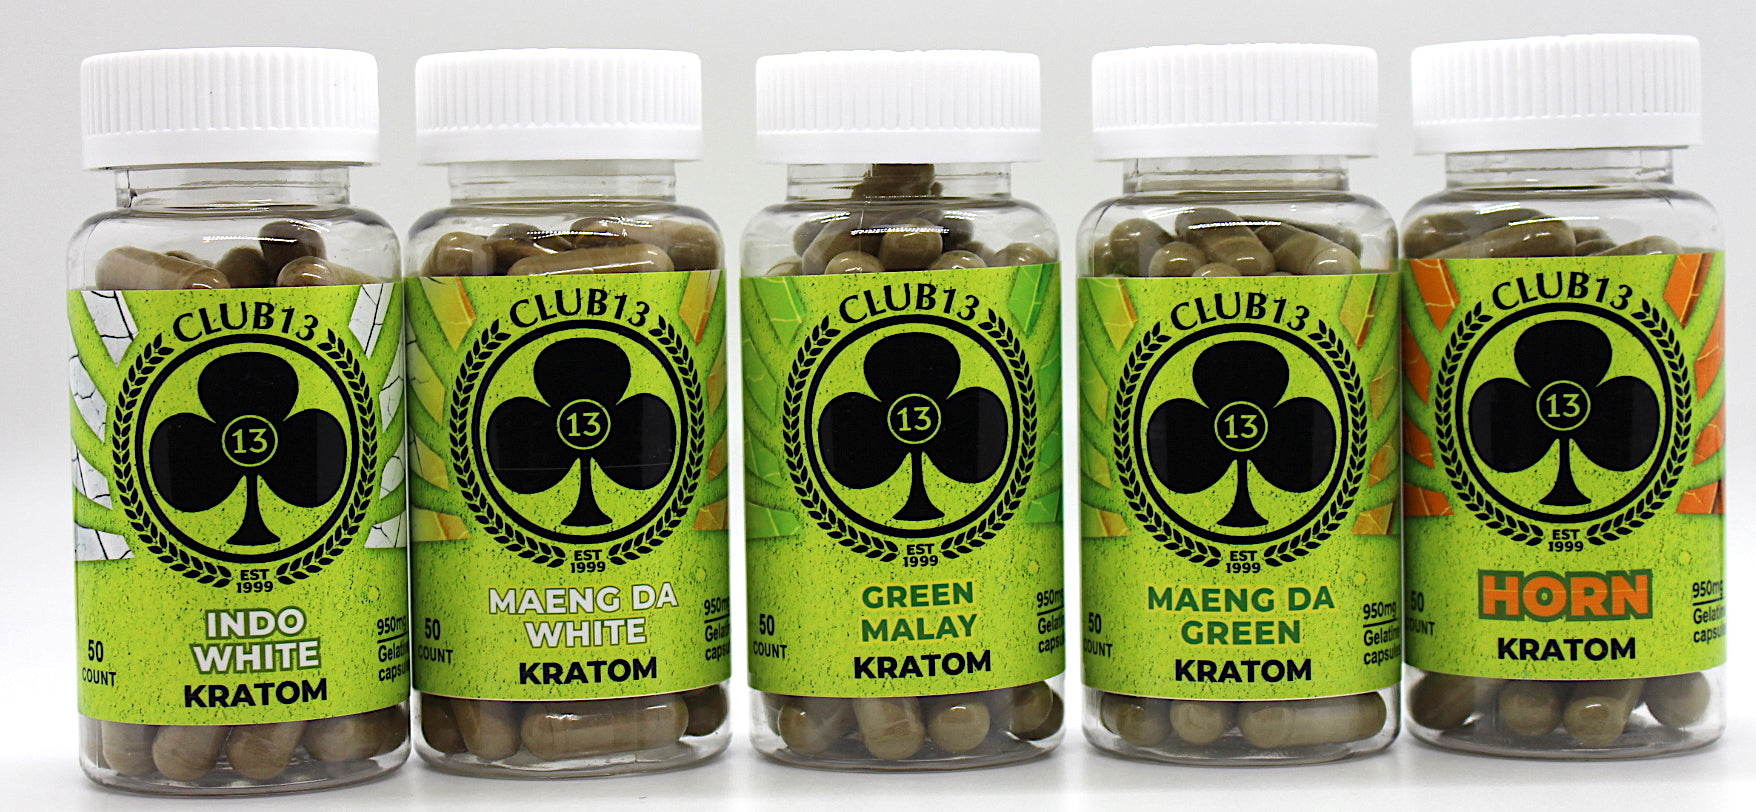 Club13 Kratom 50ct Jumbo Capsules (SELECT PIC FOR MORE OPTIONS)